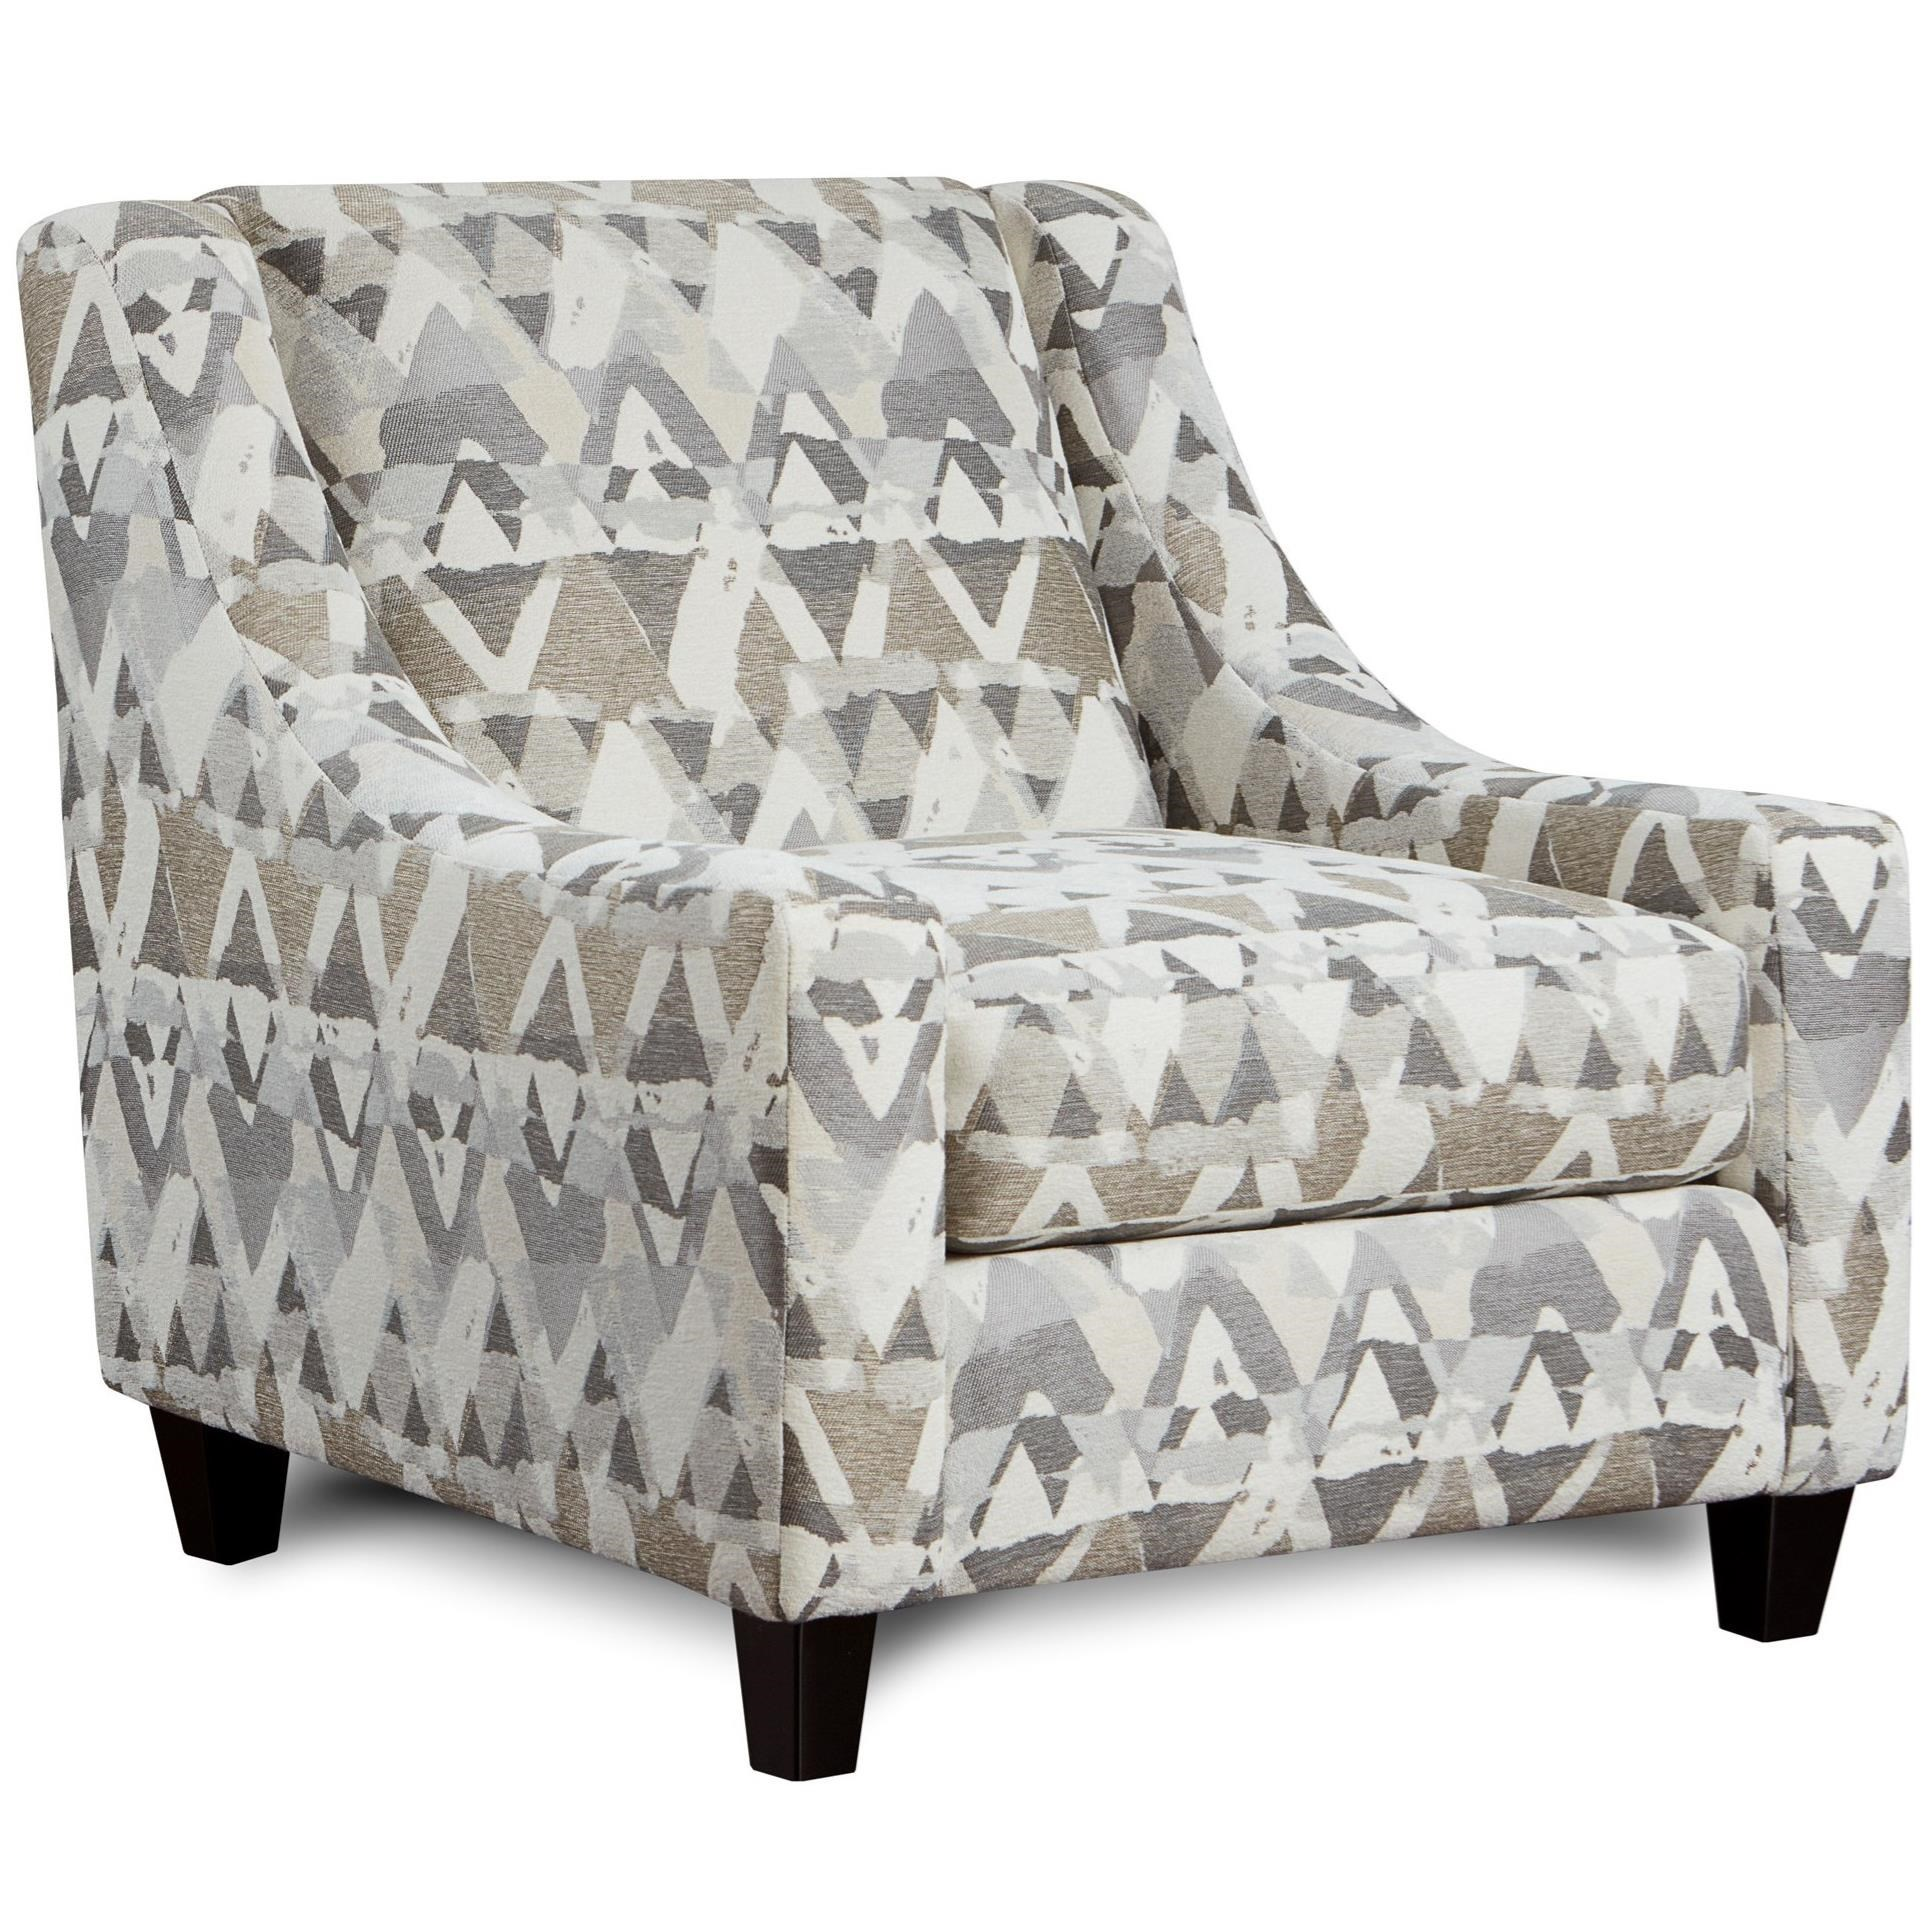 accent chair with arms fisher price rocking fusion furniture 552 upholstered low profile